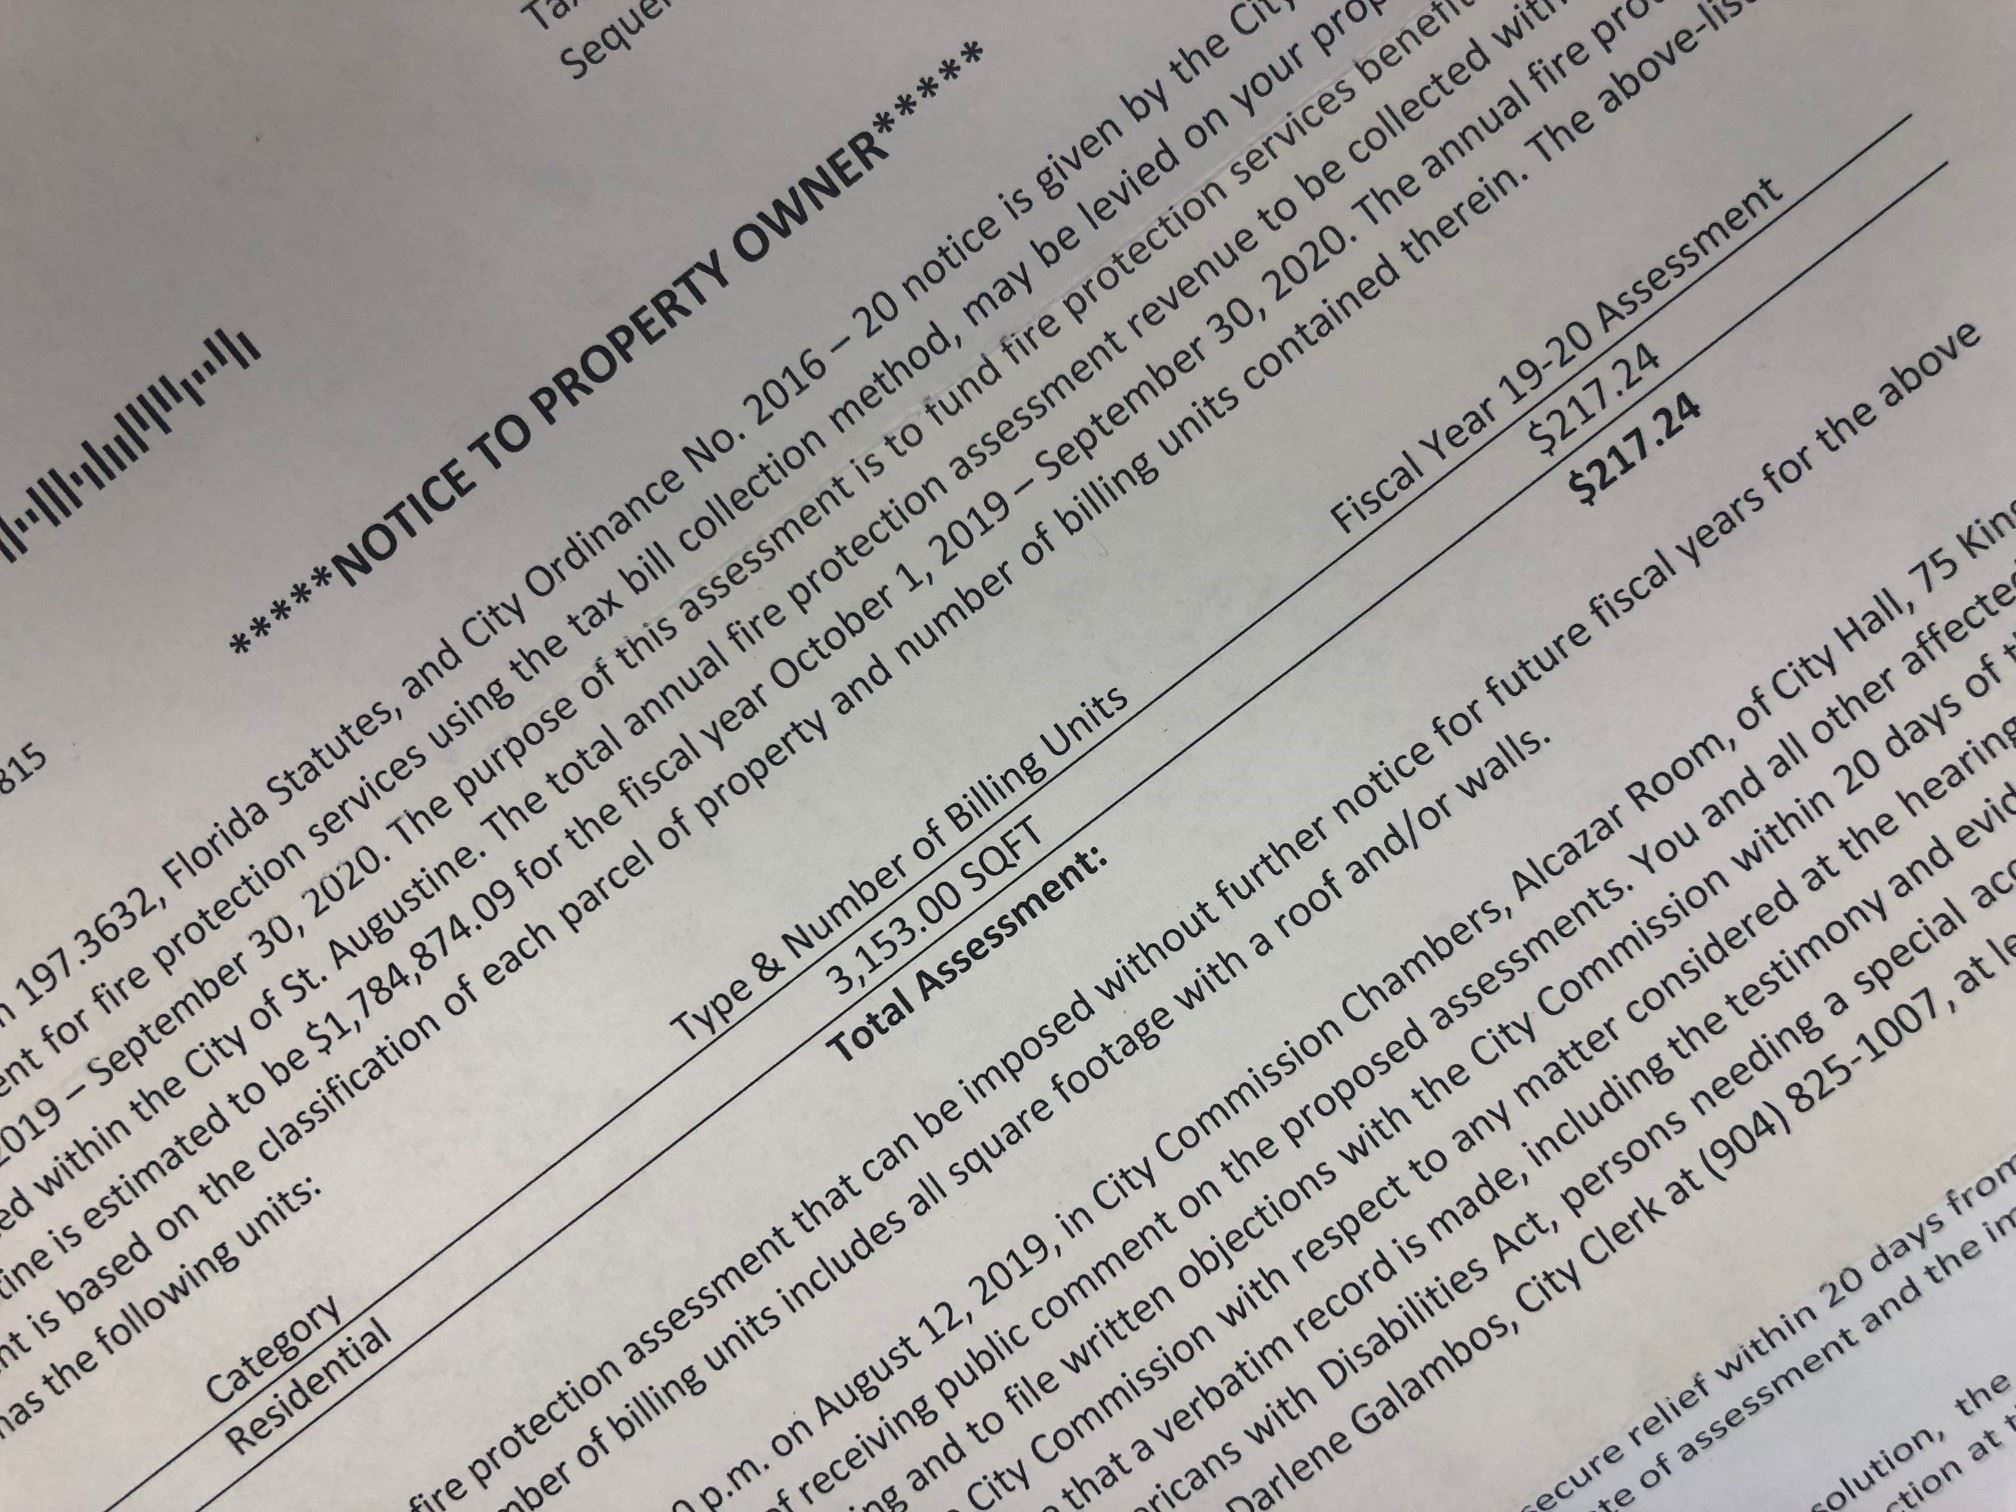 image of the Fire Assessment Notice that was mailed to residents